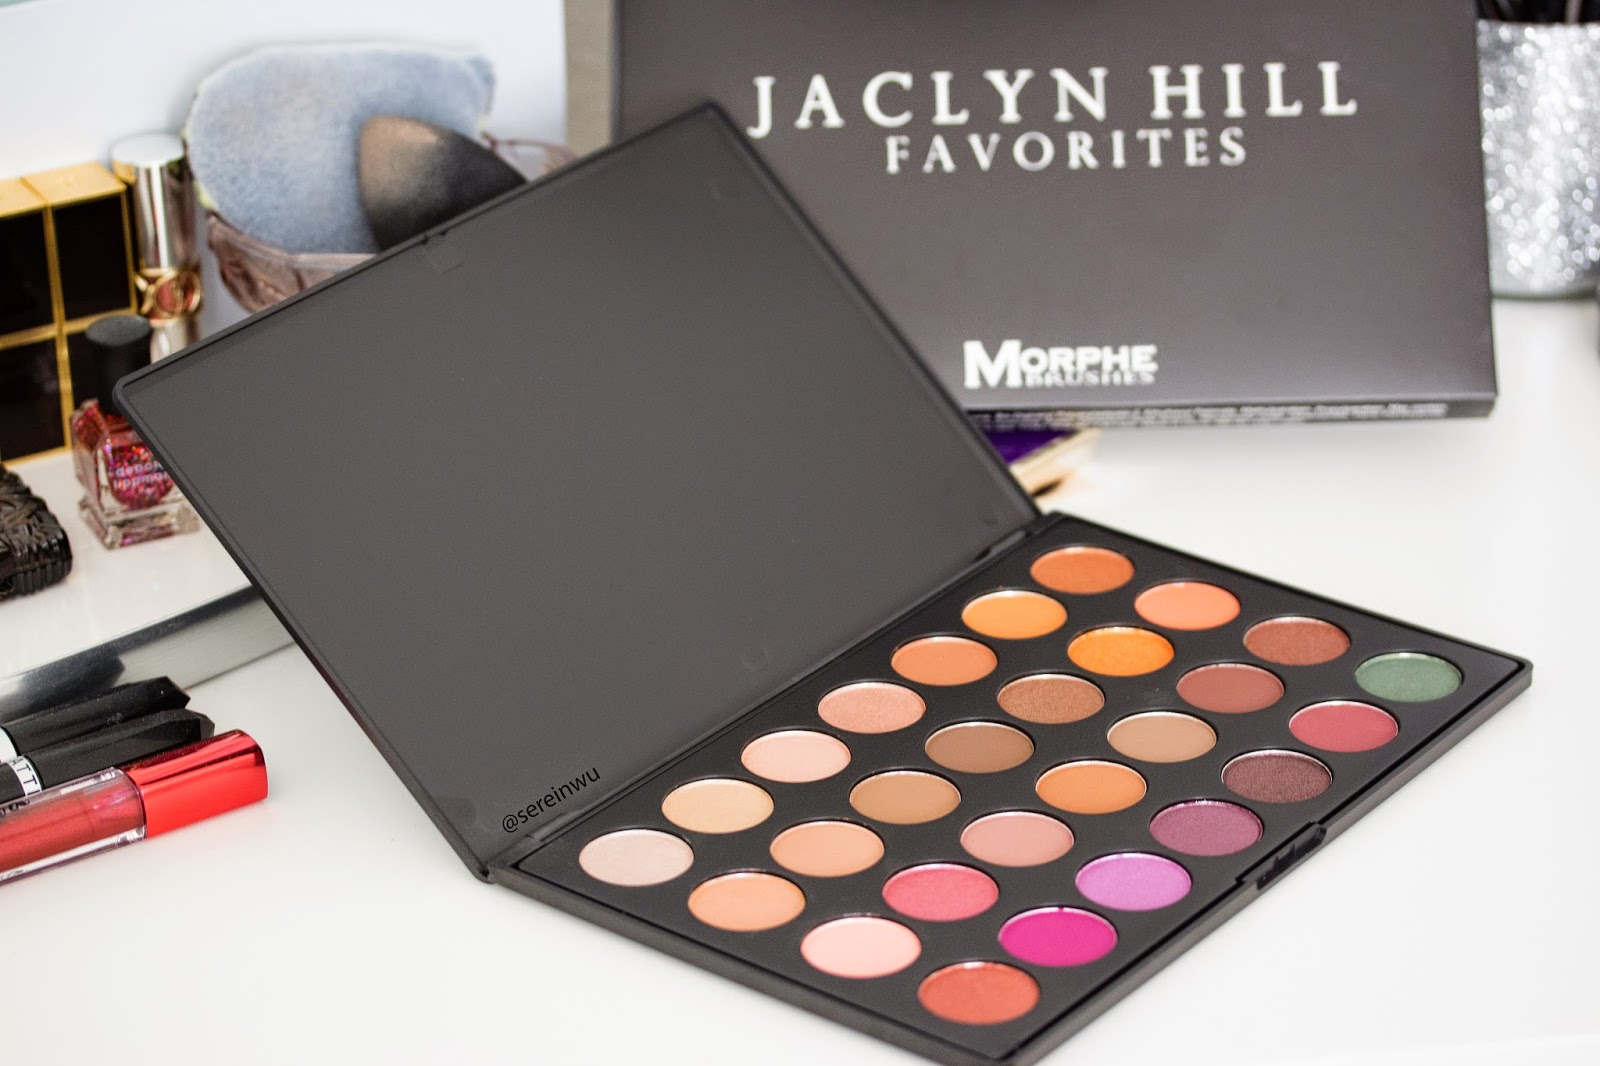 jaclyn hill favorite morphe brushes. i\u0027ve been a recent fan of jaclyn hill and i want to support youtubers whenever possible. think it as karma :-) favorite morphe brushes 3